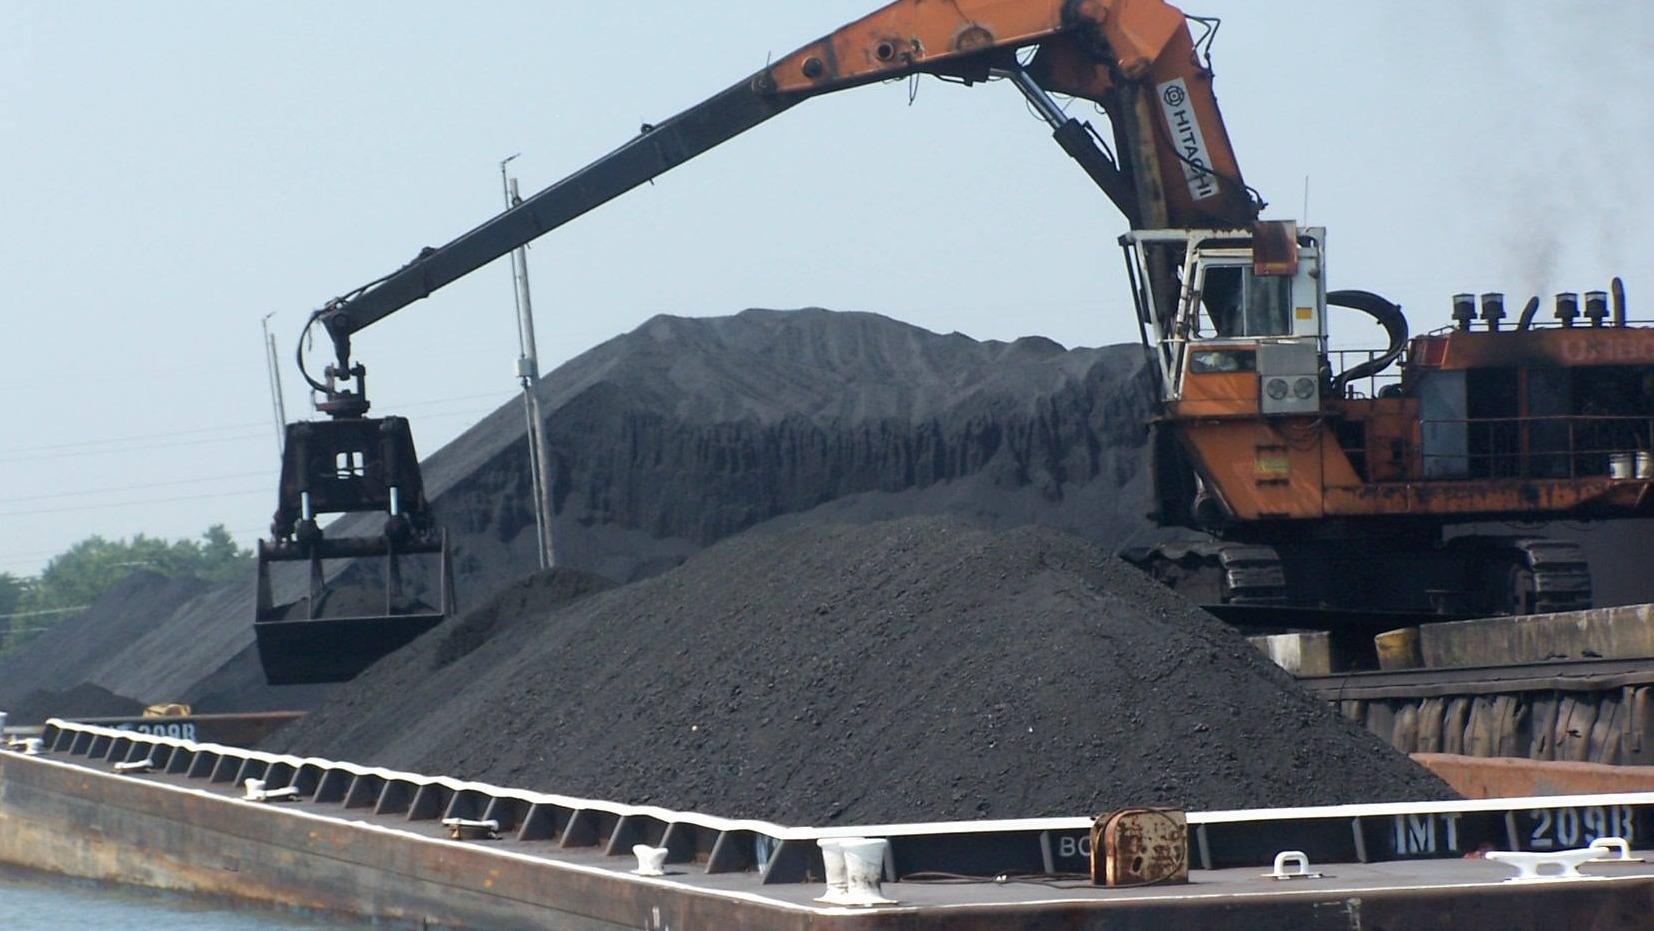 One of the petcoke piles in Chicago